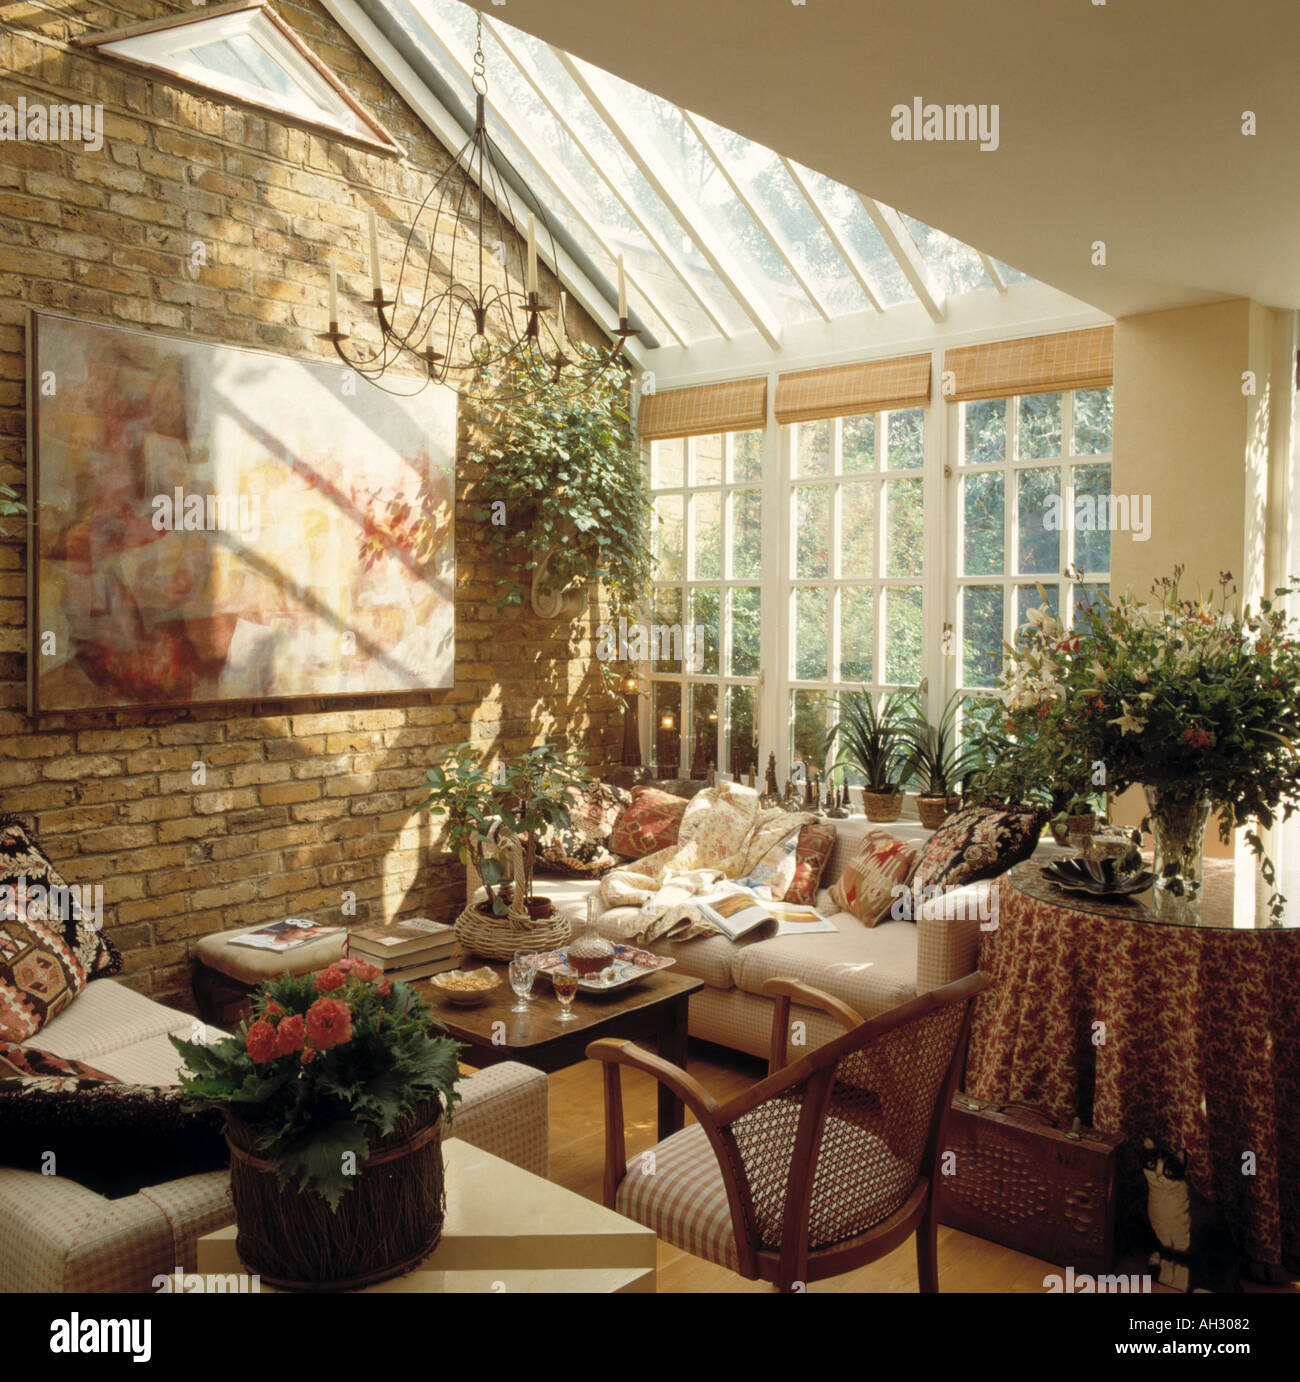 large picture on exposed brick wall in conservatory living room